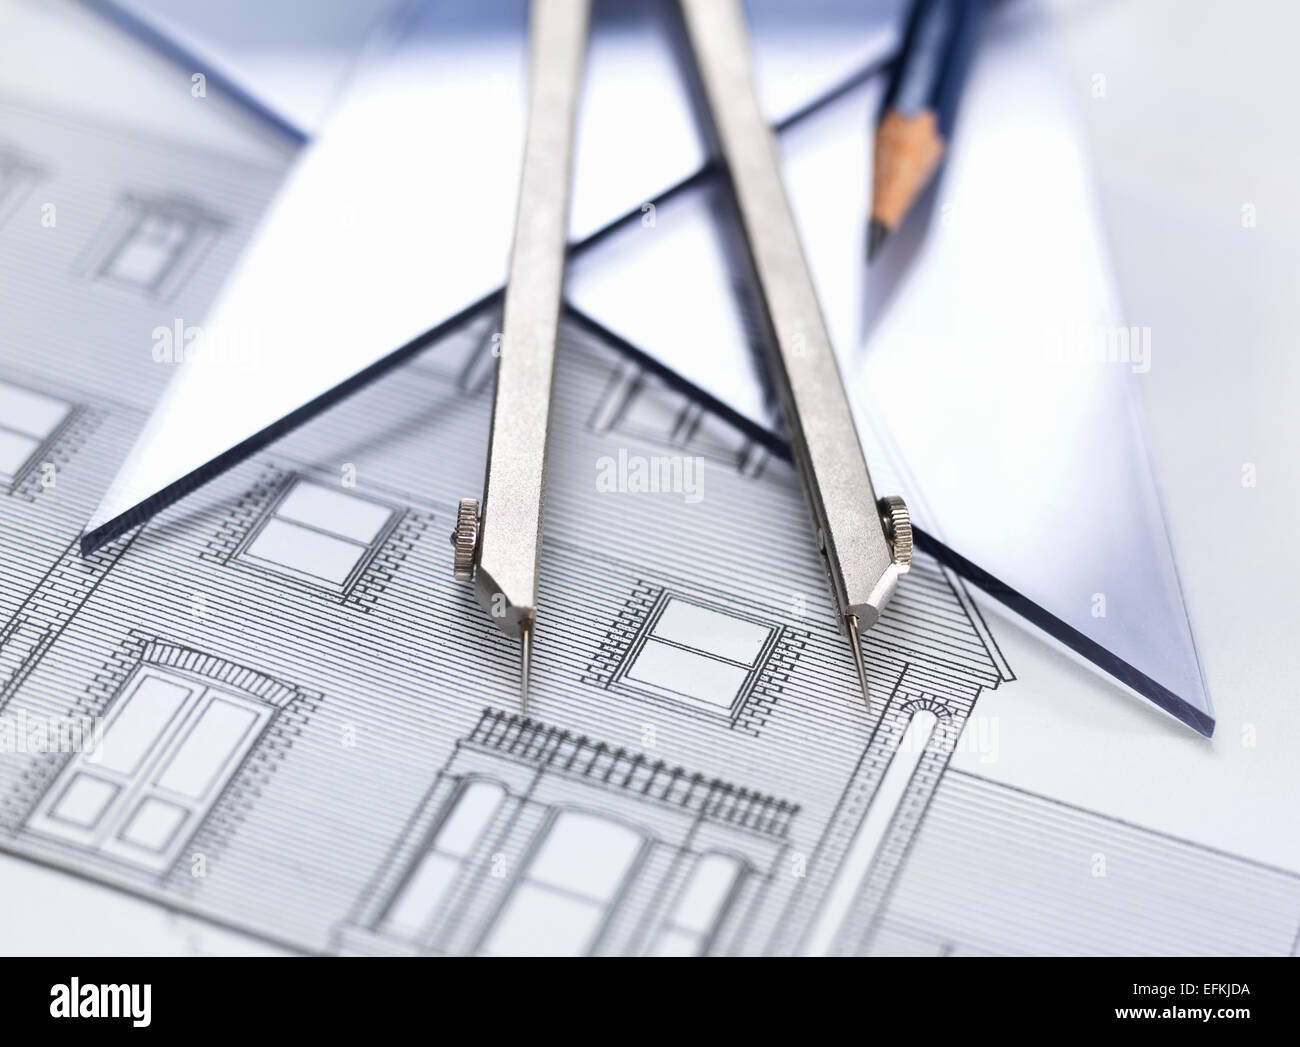 architectural drawing drawing equipment stock photo royalty architectural drawing drawing equipment